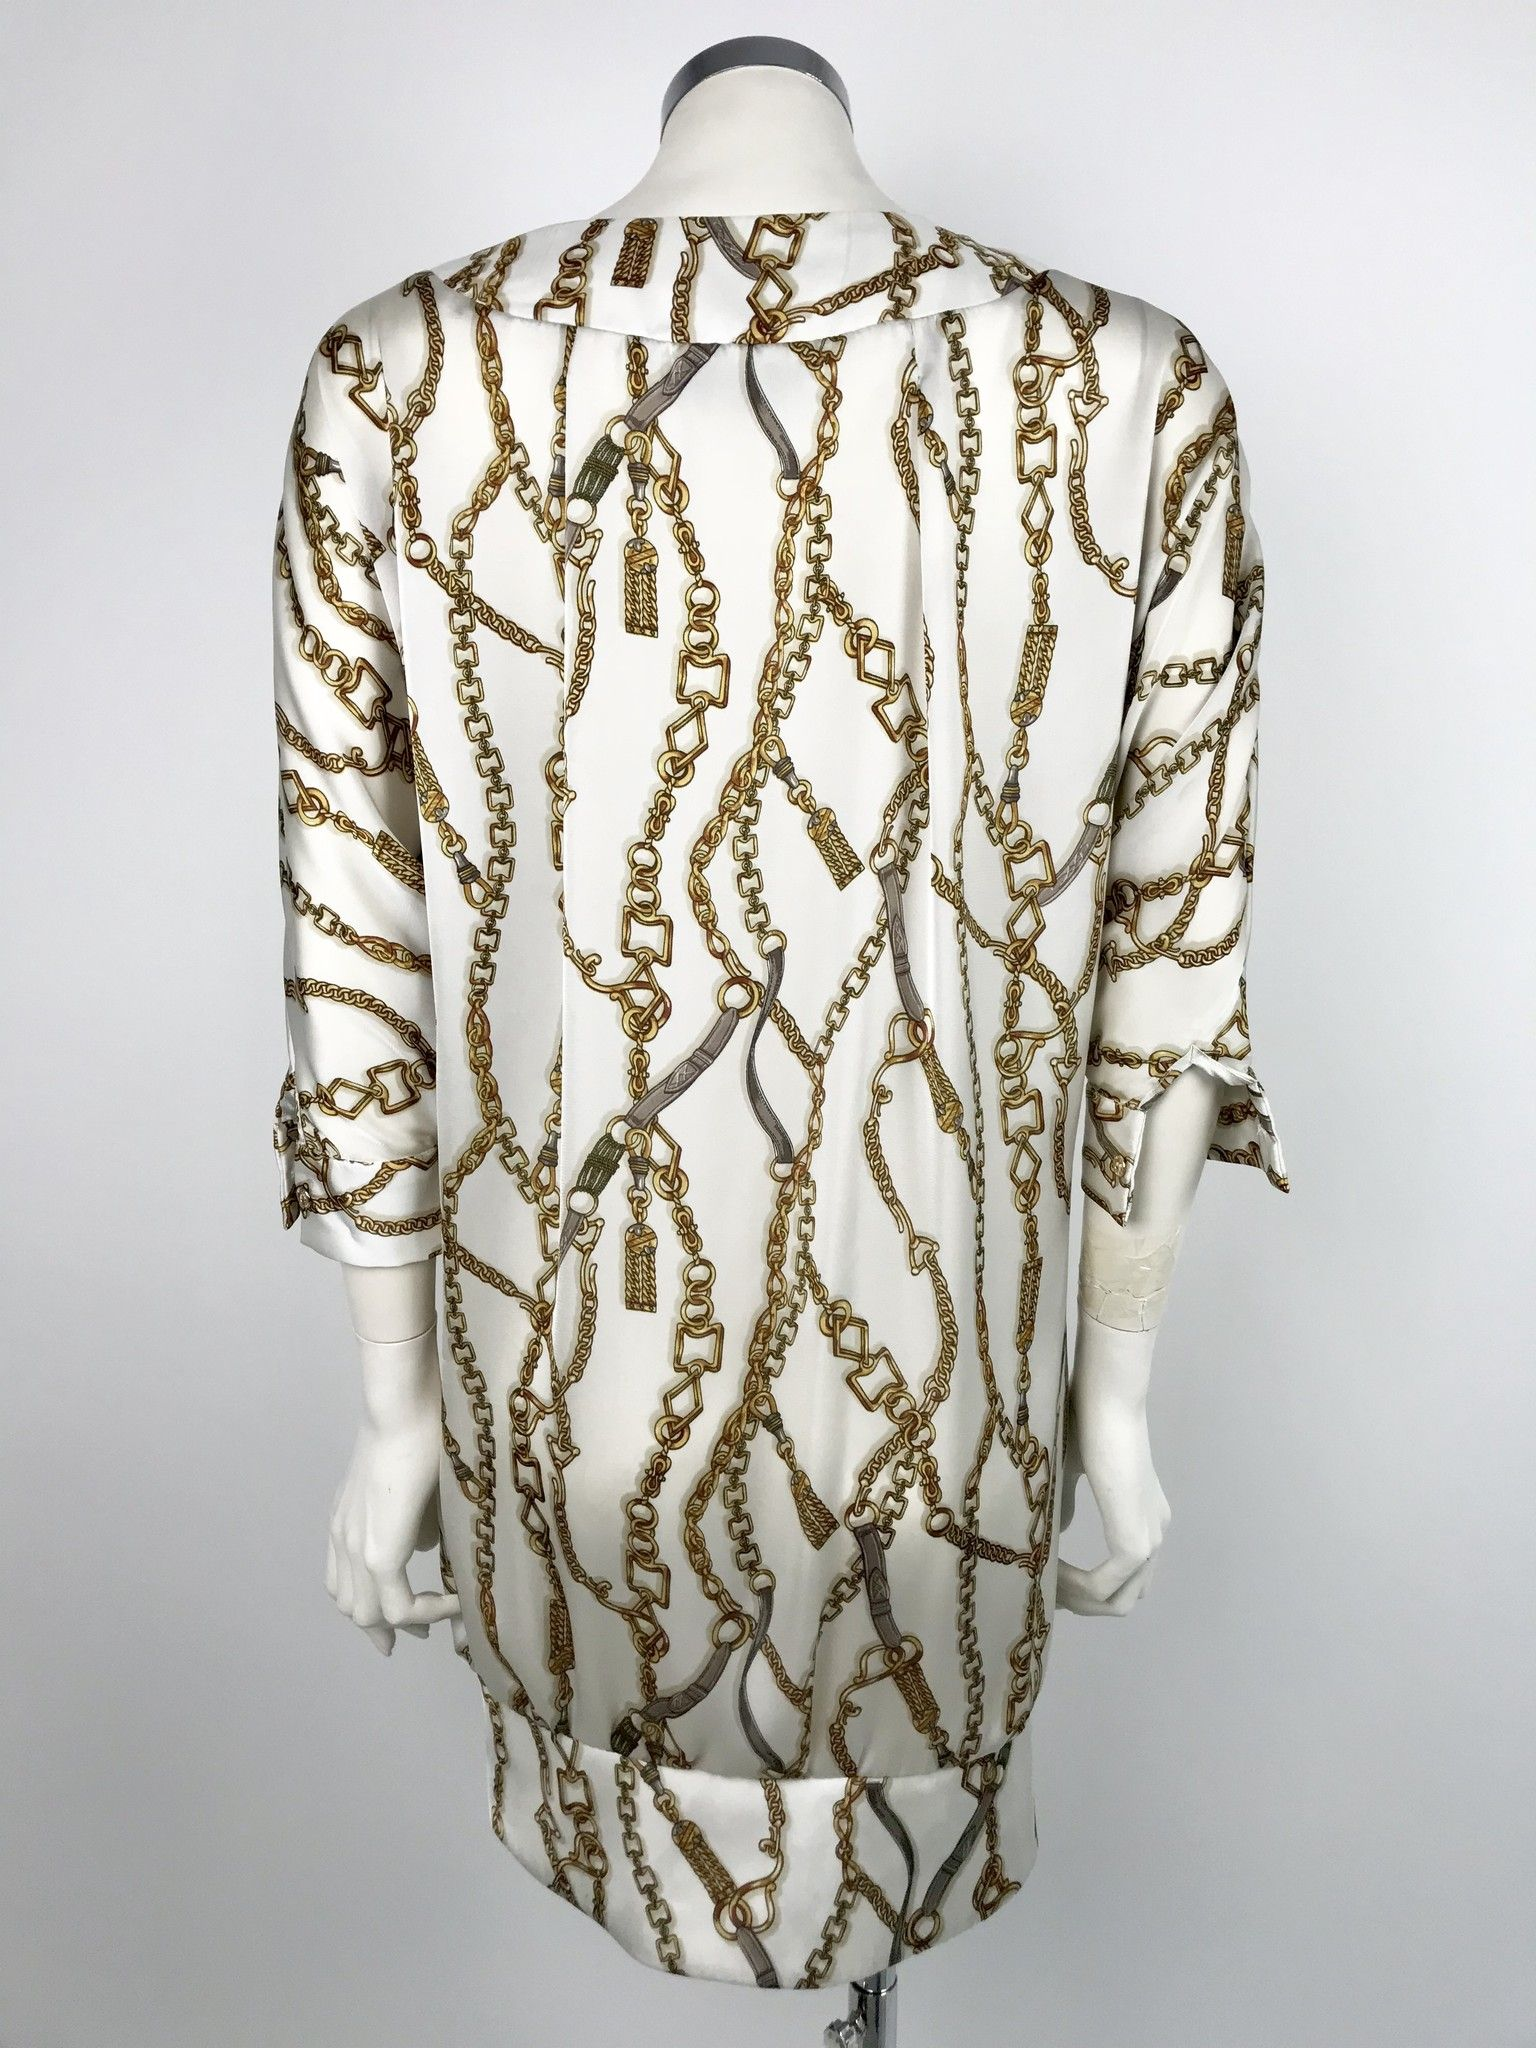 Roberta Biagi Fancy Chains Long Blouse Cod. 0522